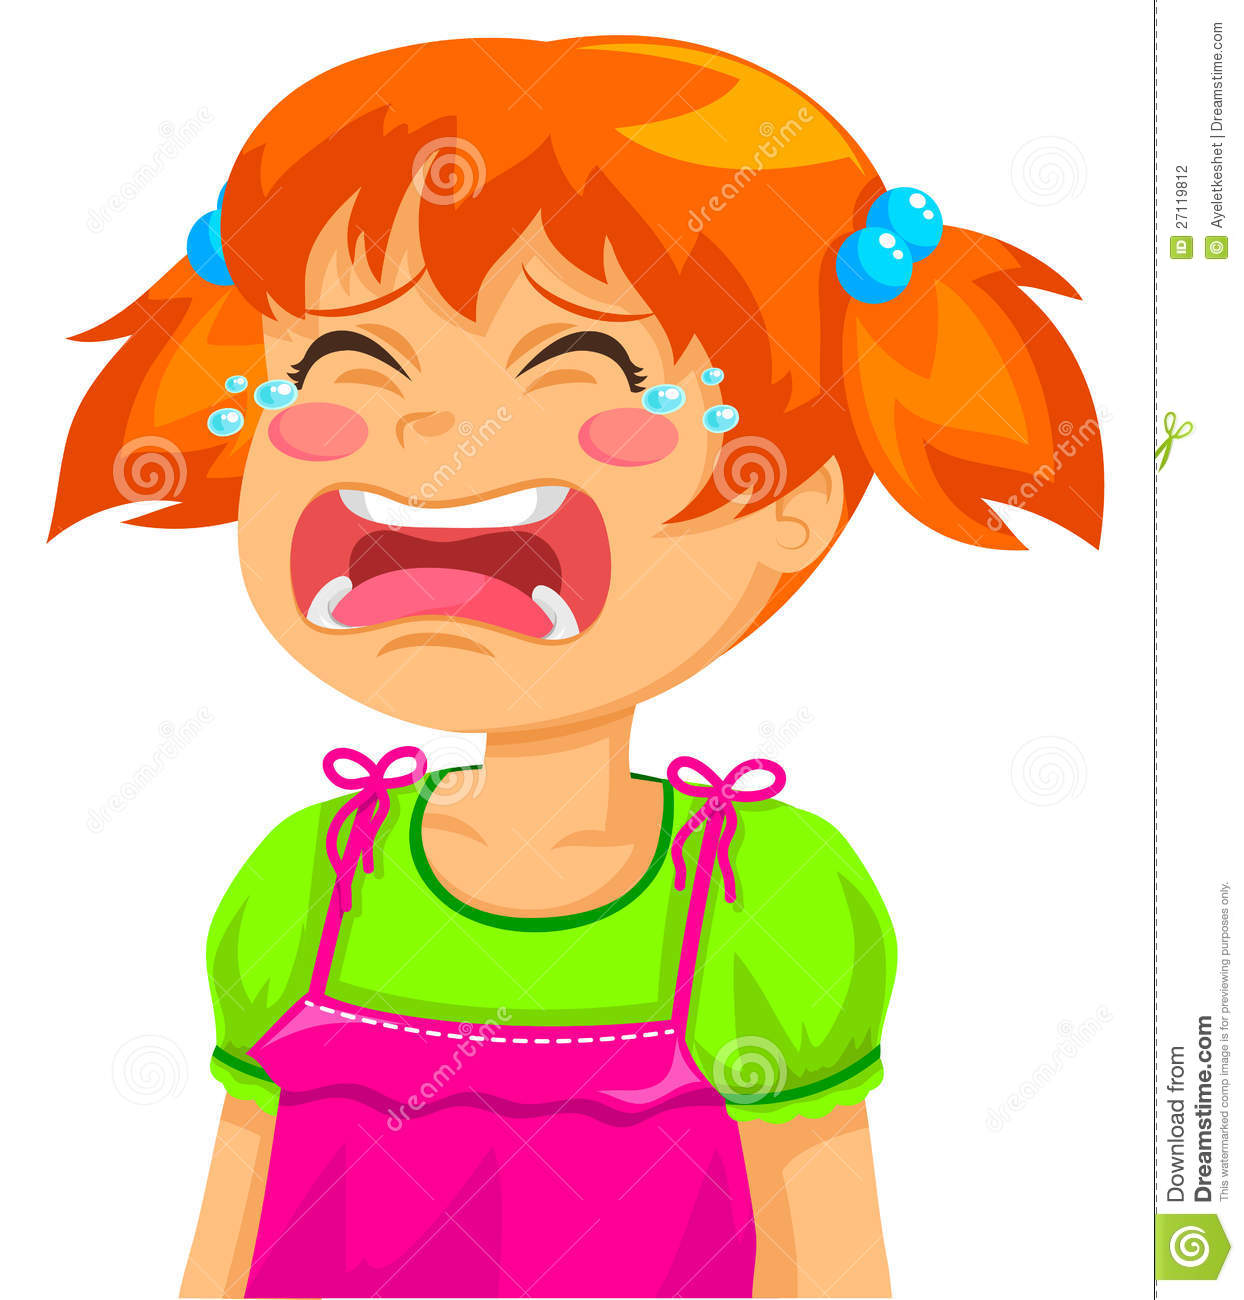 5572 Crying free clipart.